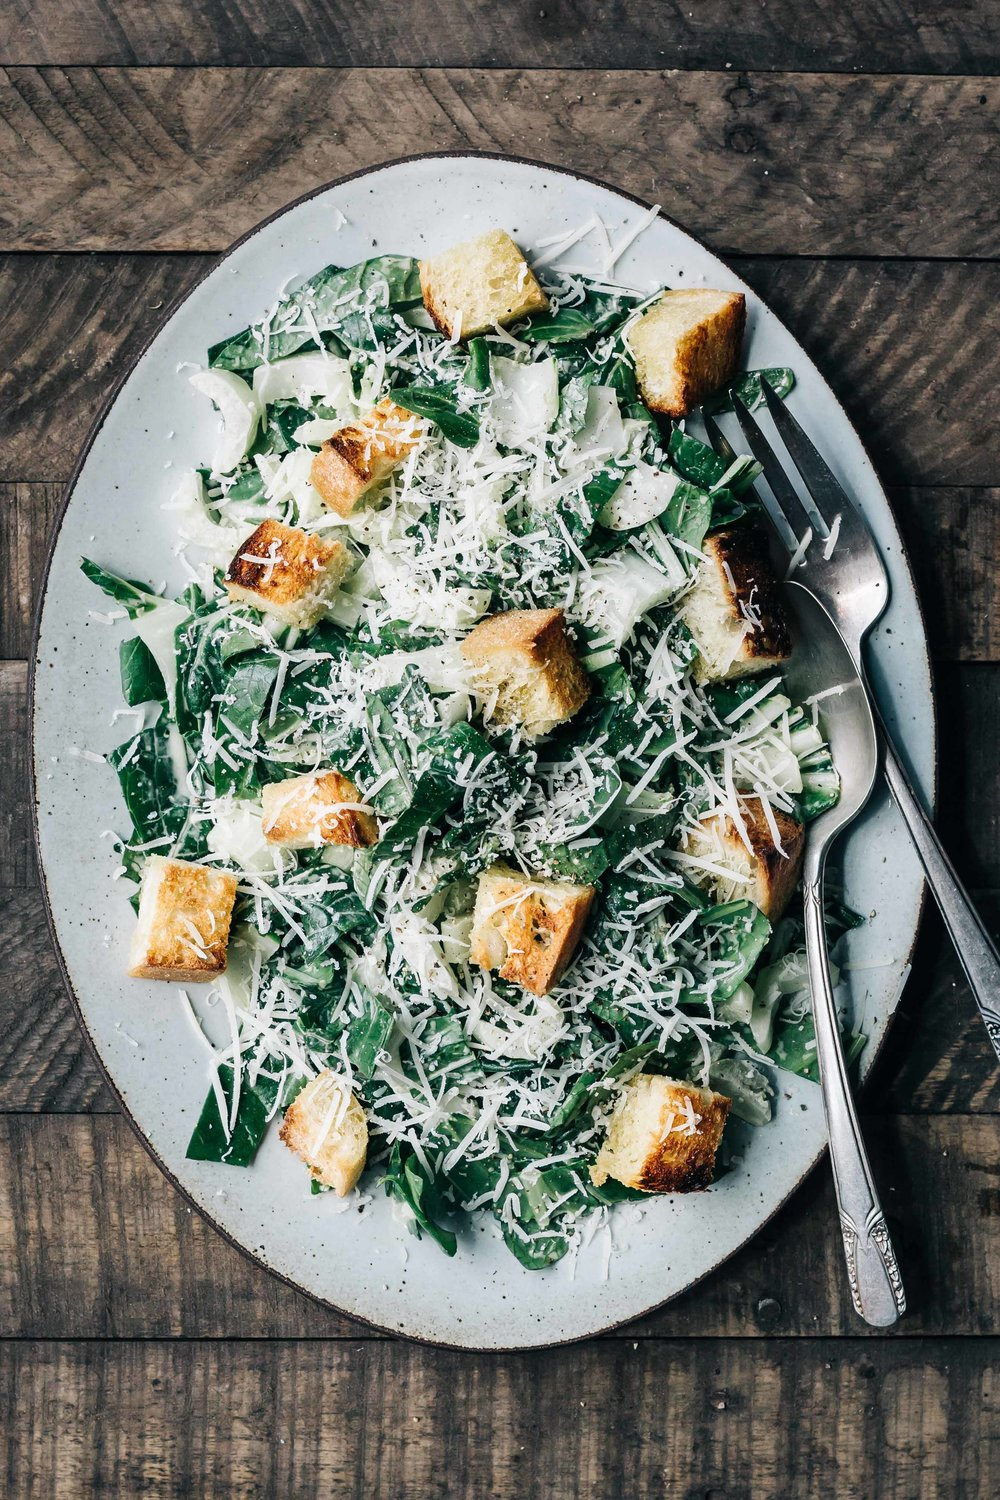 Bok Choy Caesar Salad with Green Garlic Croutons